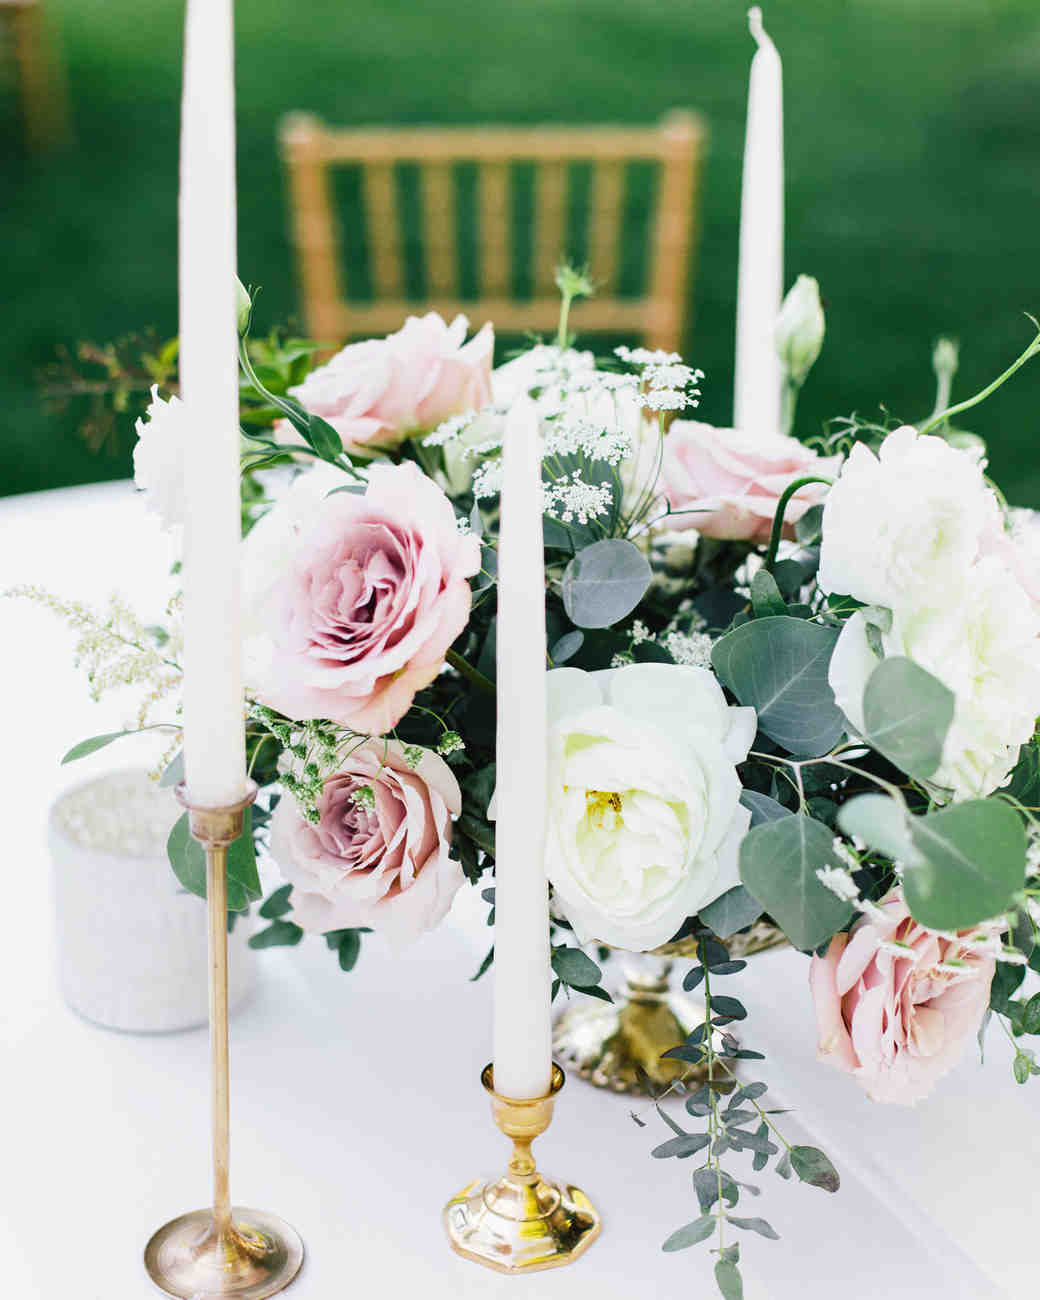 Ideas For Wedding Flower Arrangements: 50 Wedding Centerpiece Ideas We Love